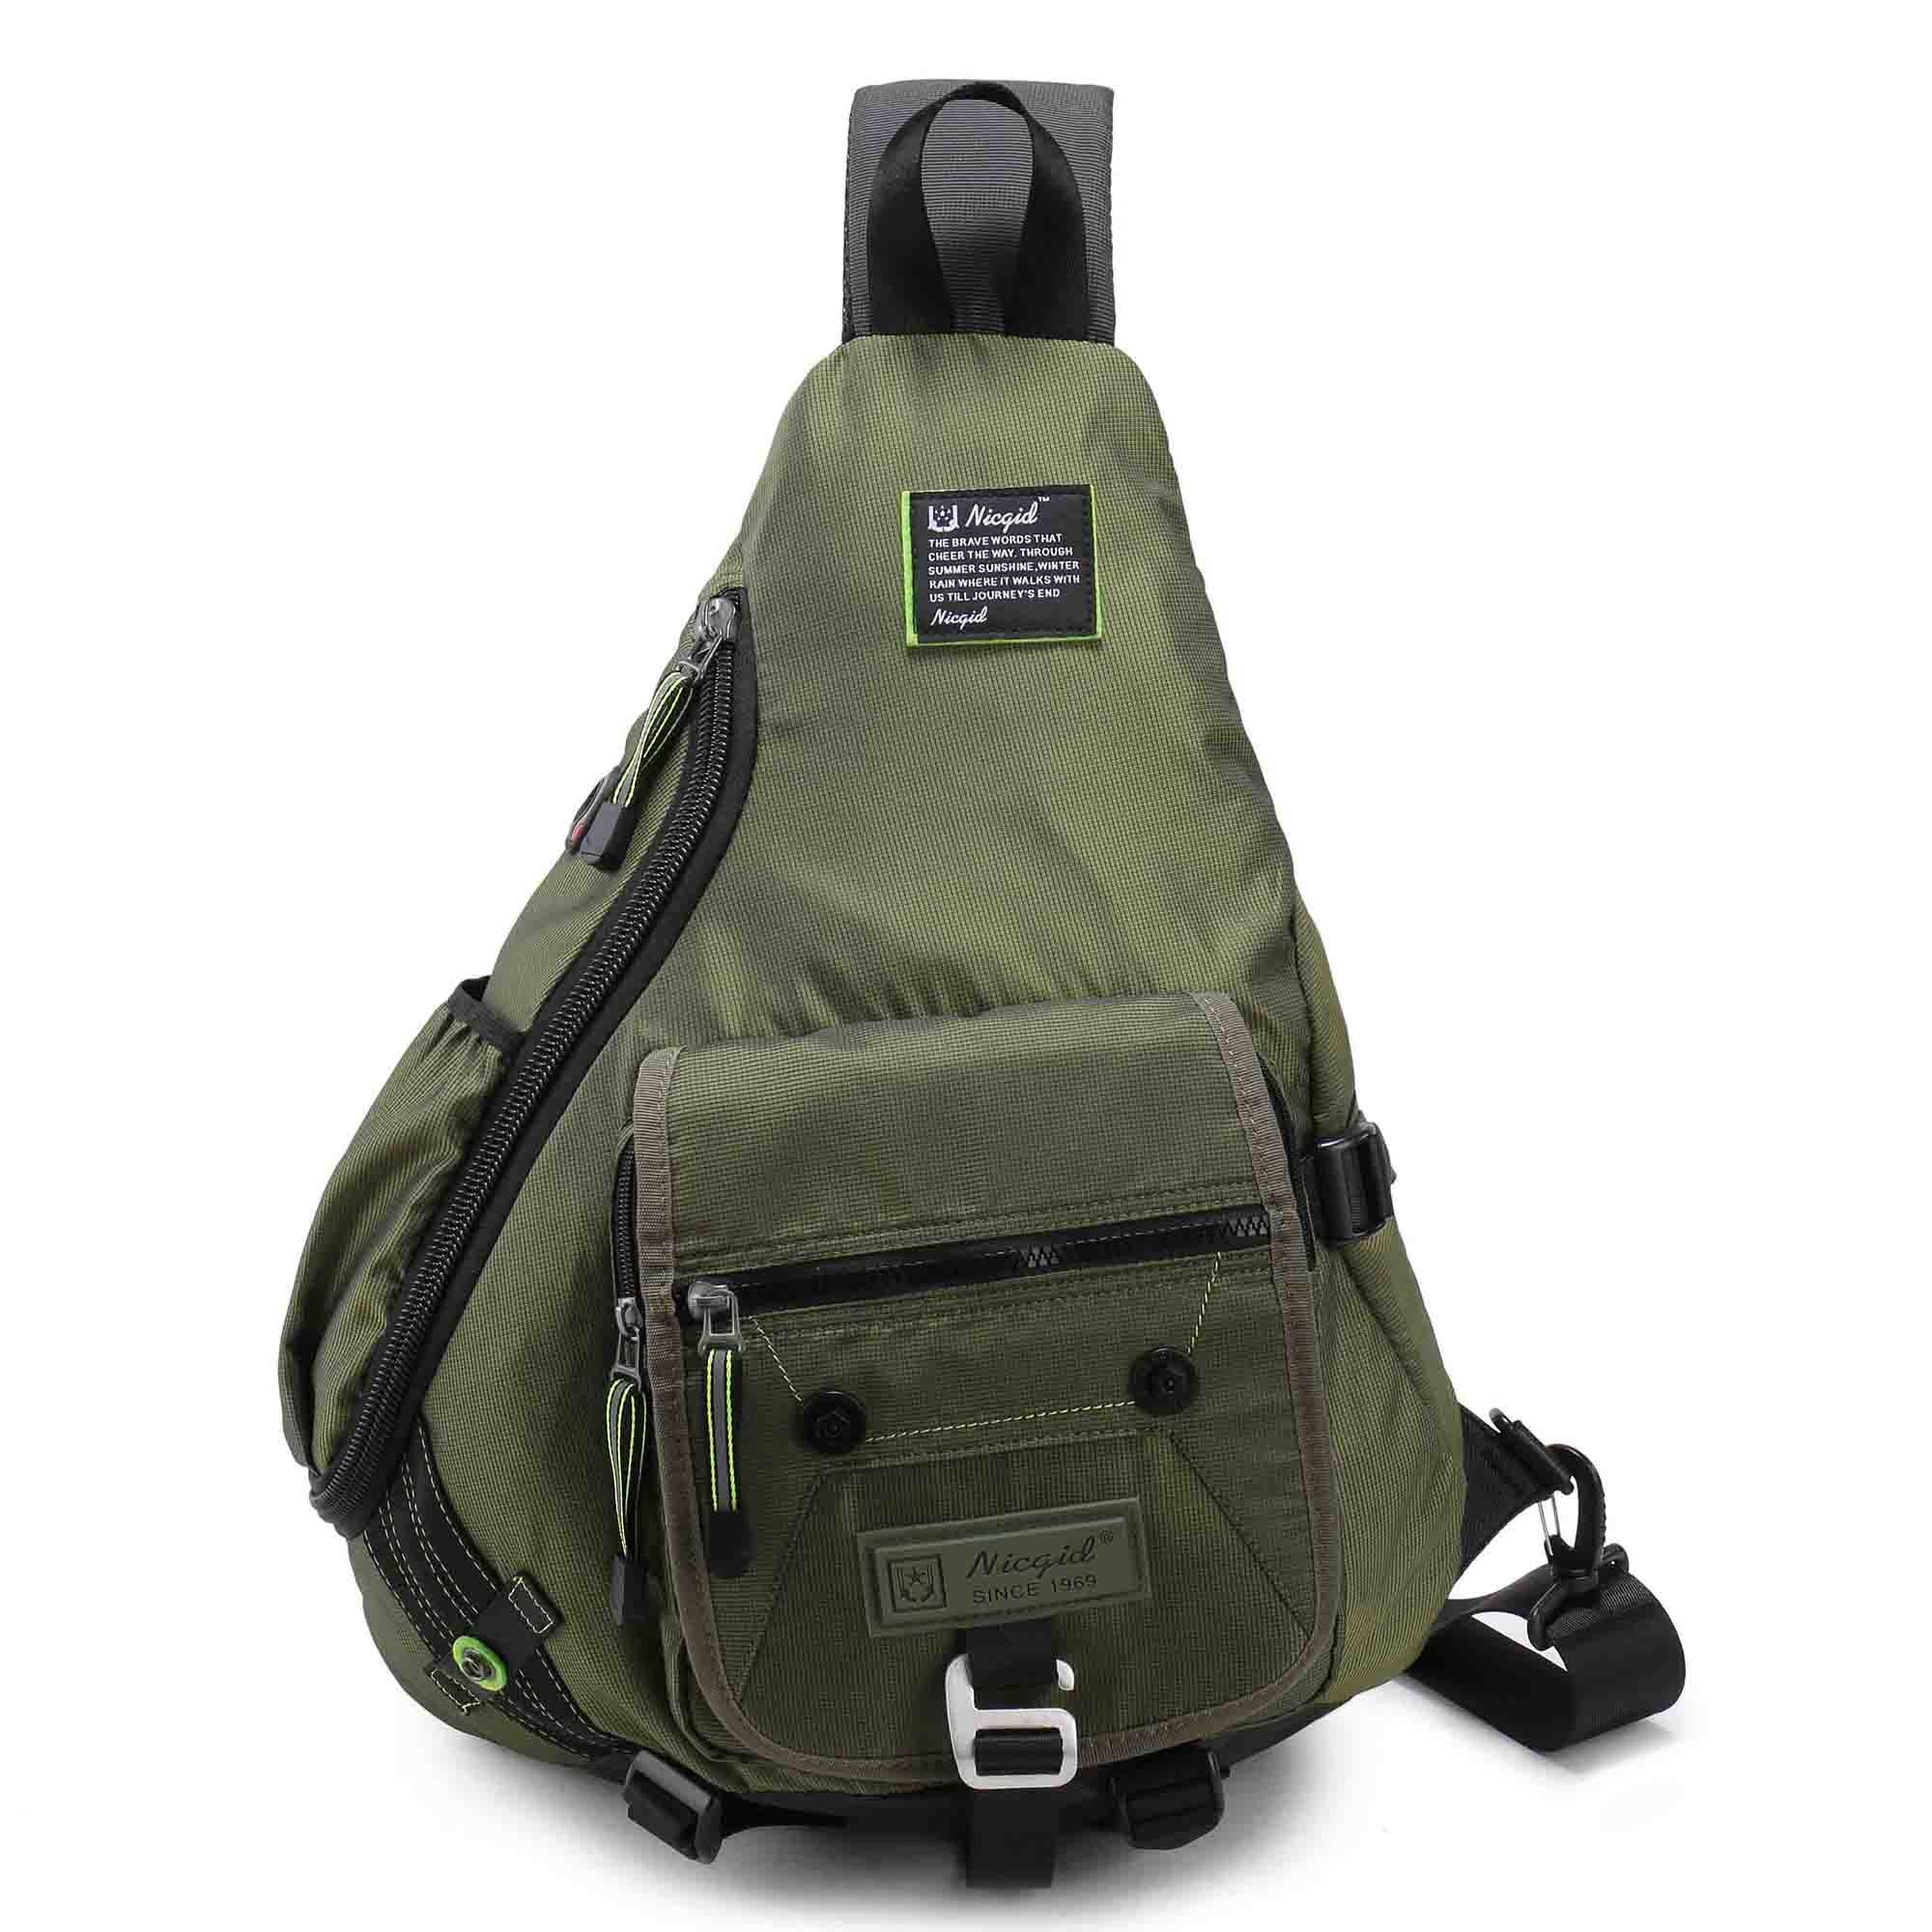 Brave Waterproof Military Tactical Sling Chest Bag Travel Hiking Molle Cross Body Messenger Backpack Shoulder Bag Casual Day Pack Sports & Entertainment Climbing Bags